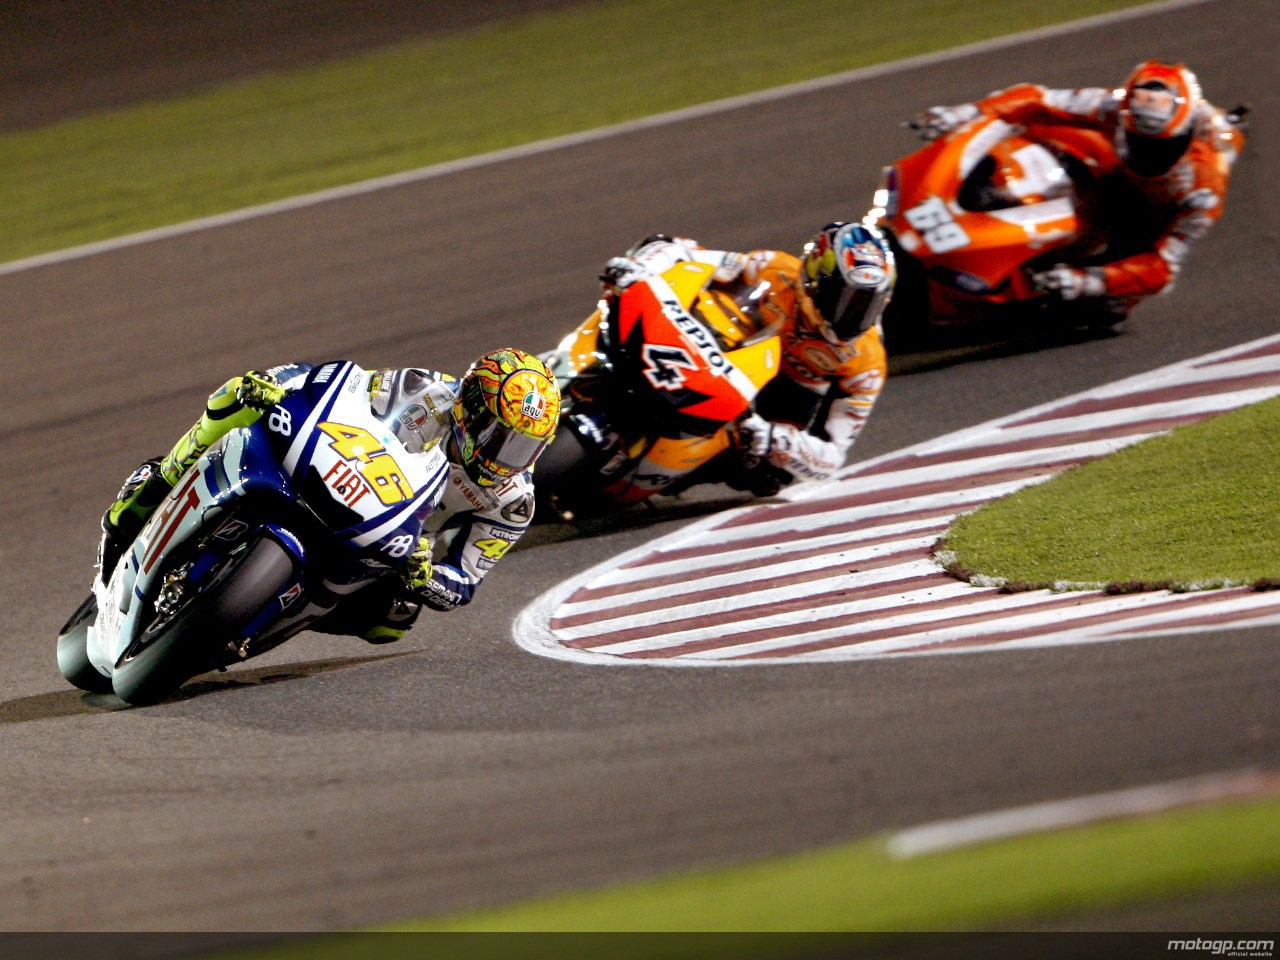 motogp.com · MotoGP action in Qatar